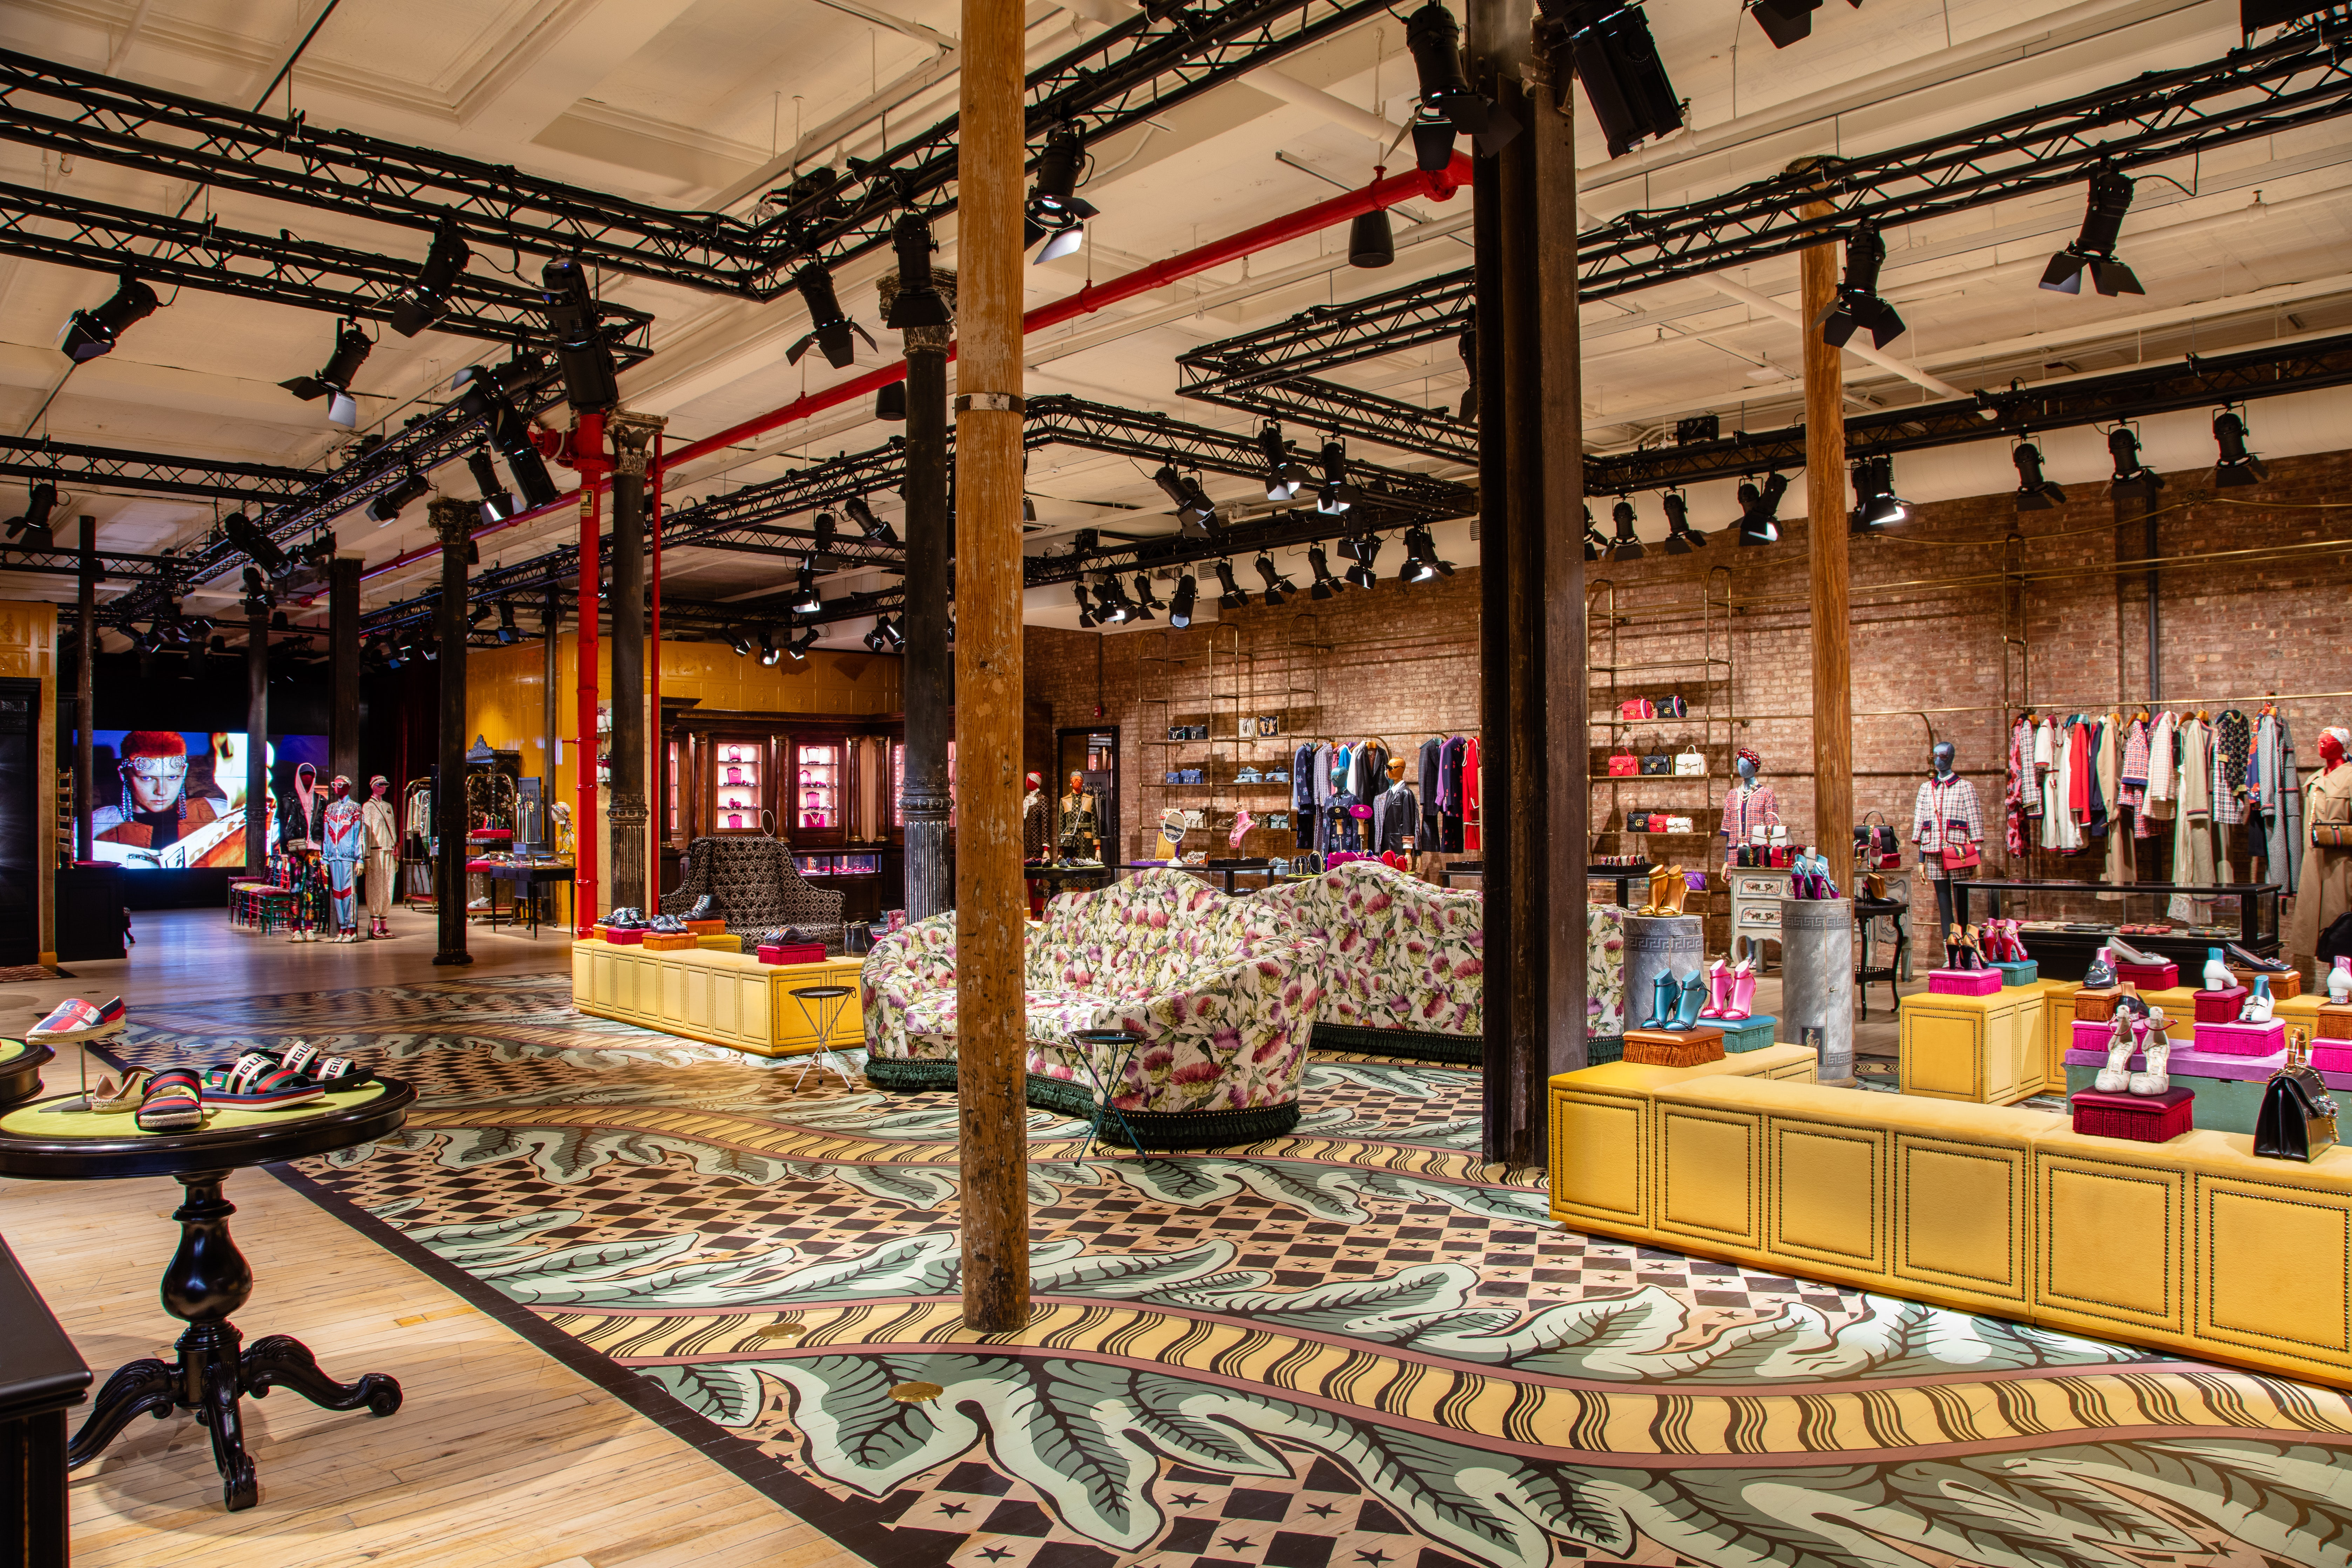 Gucci's new store in Soho is designed to entice shoppers to linger. | Source: Courtesy